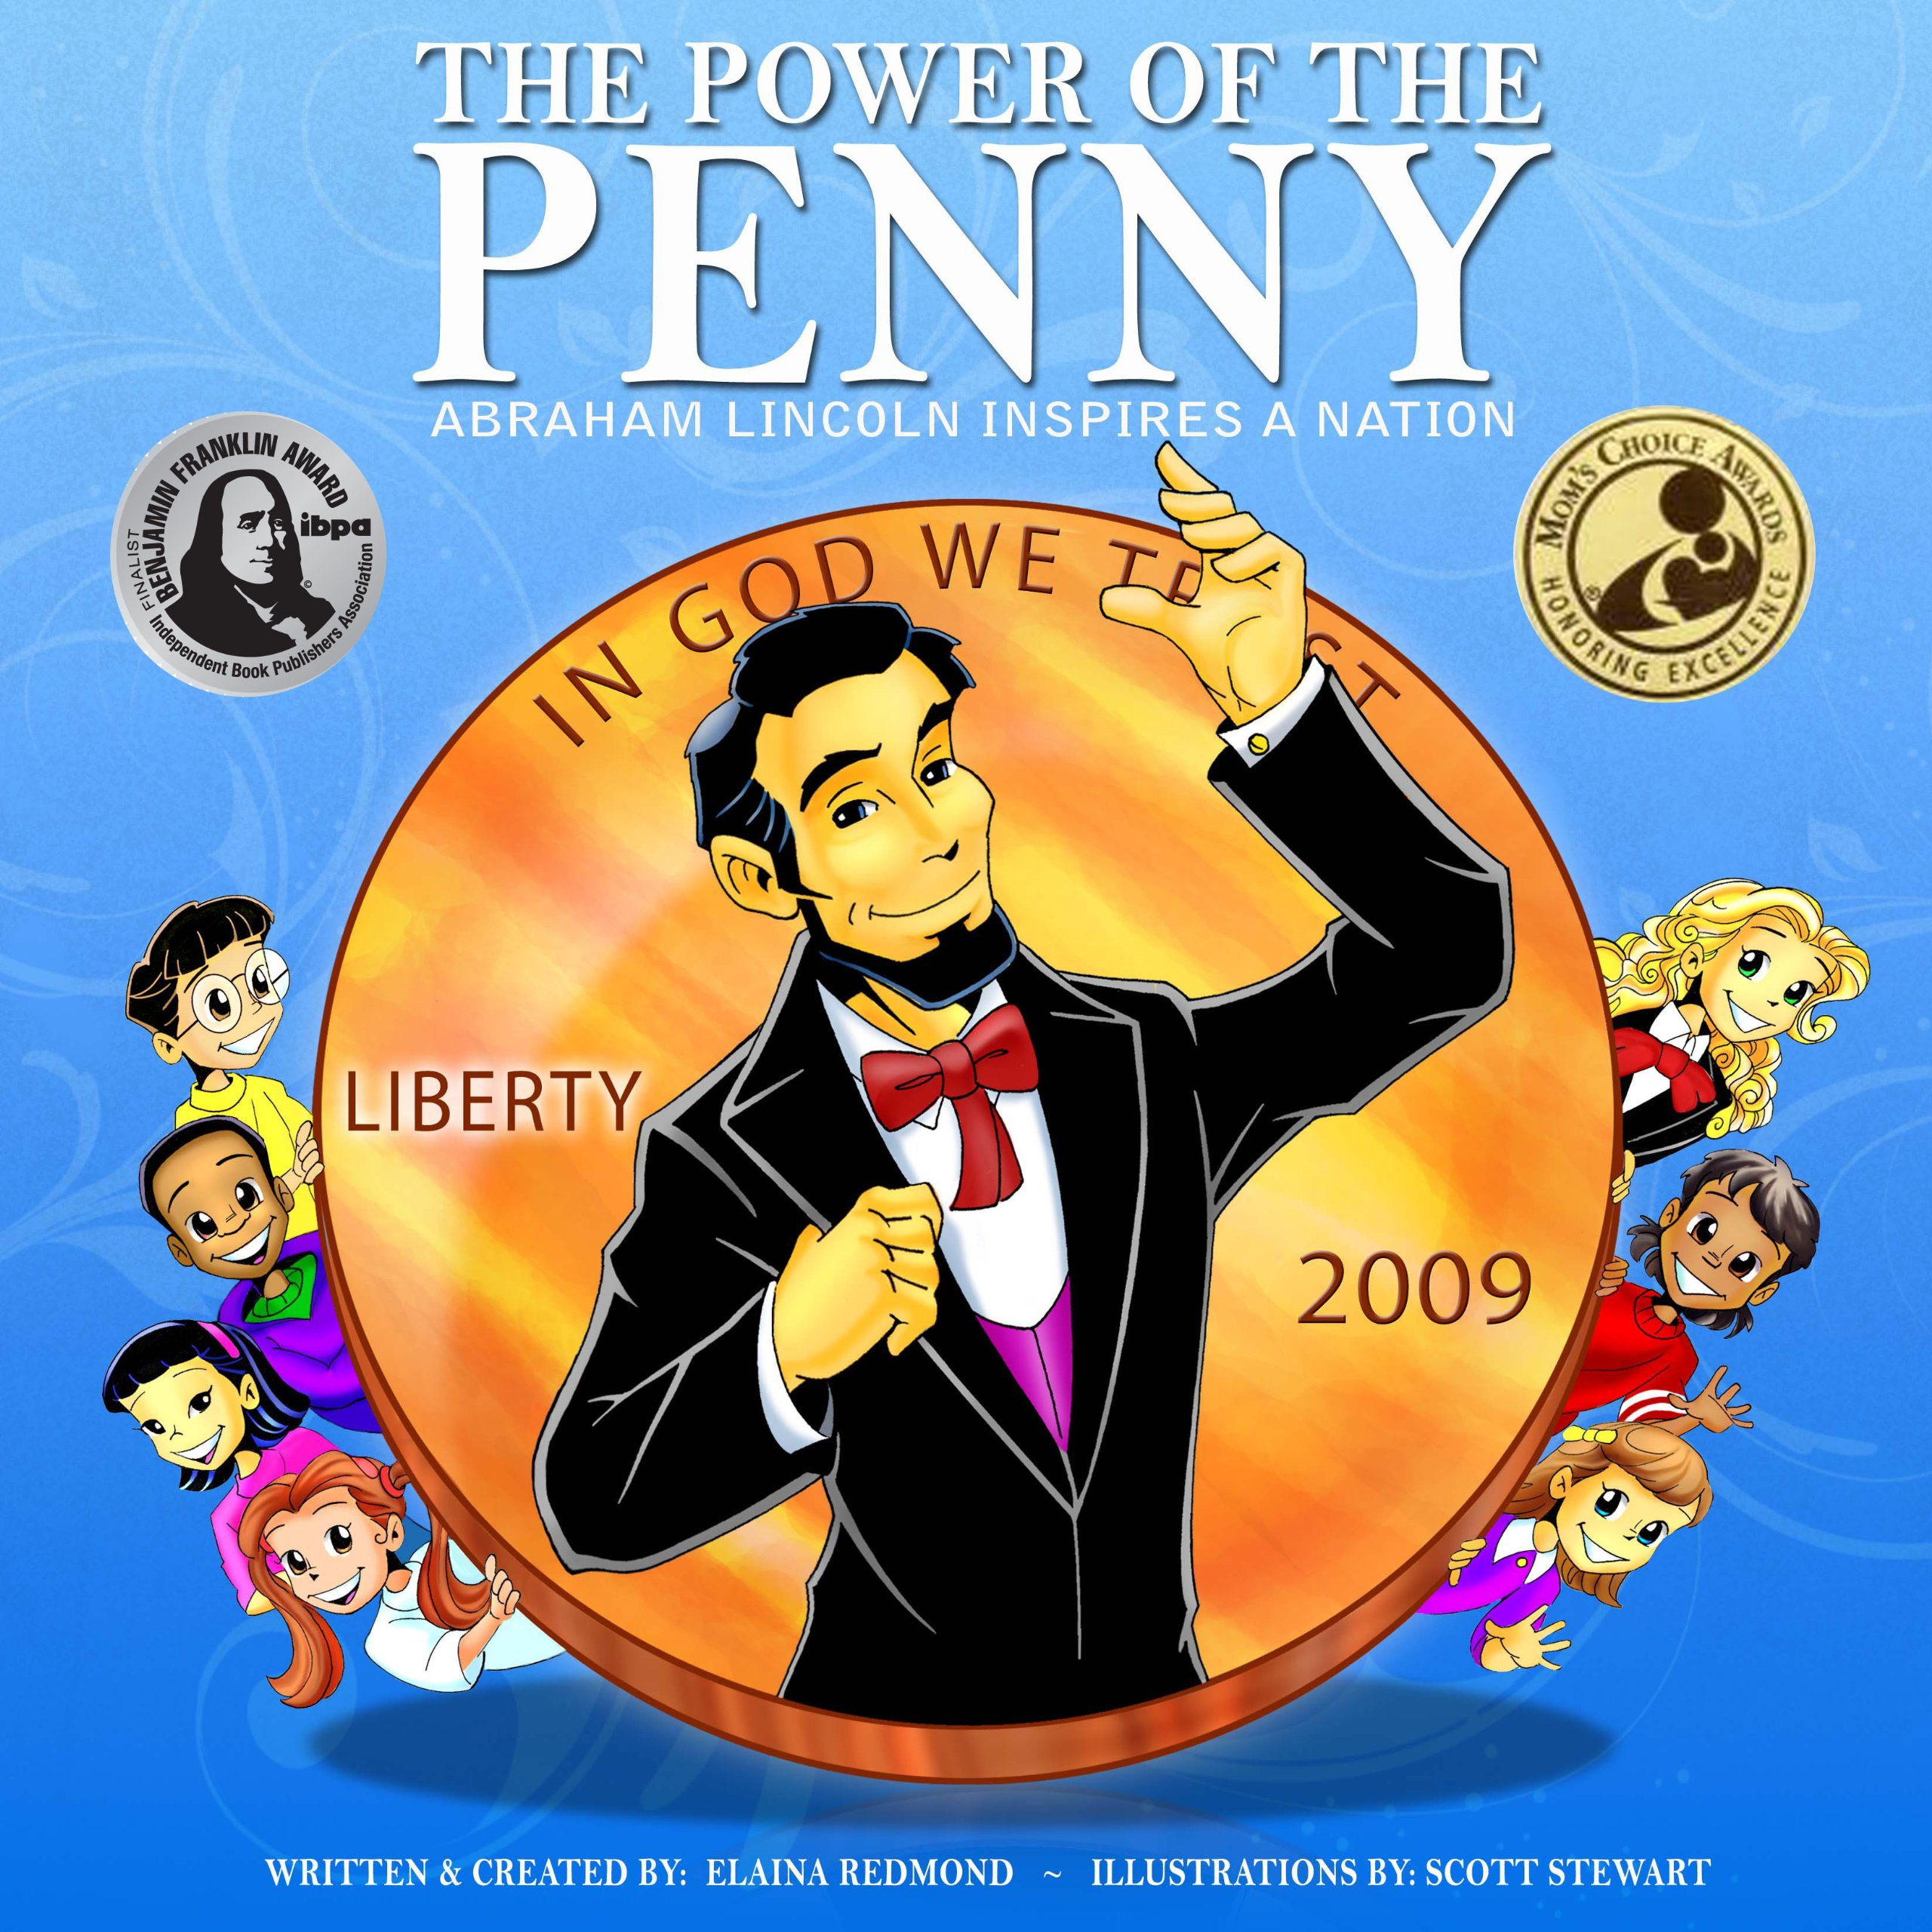 The power of the penny abraham lincoln inspires a nation a family the power of the penny abraham lincoln inspires a nation a family values book for kids elaina redmond scott stewart 9780981551500 amazon books fandeluxe Gallery